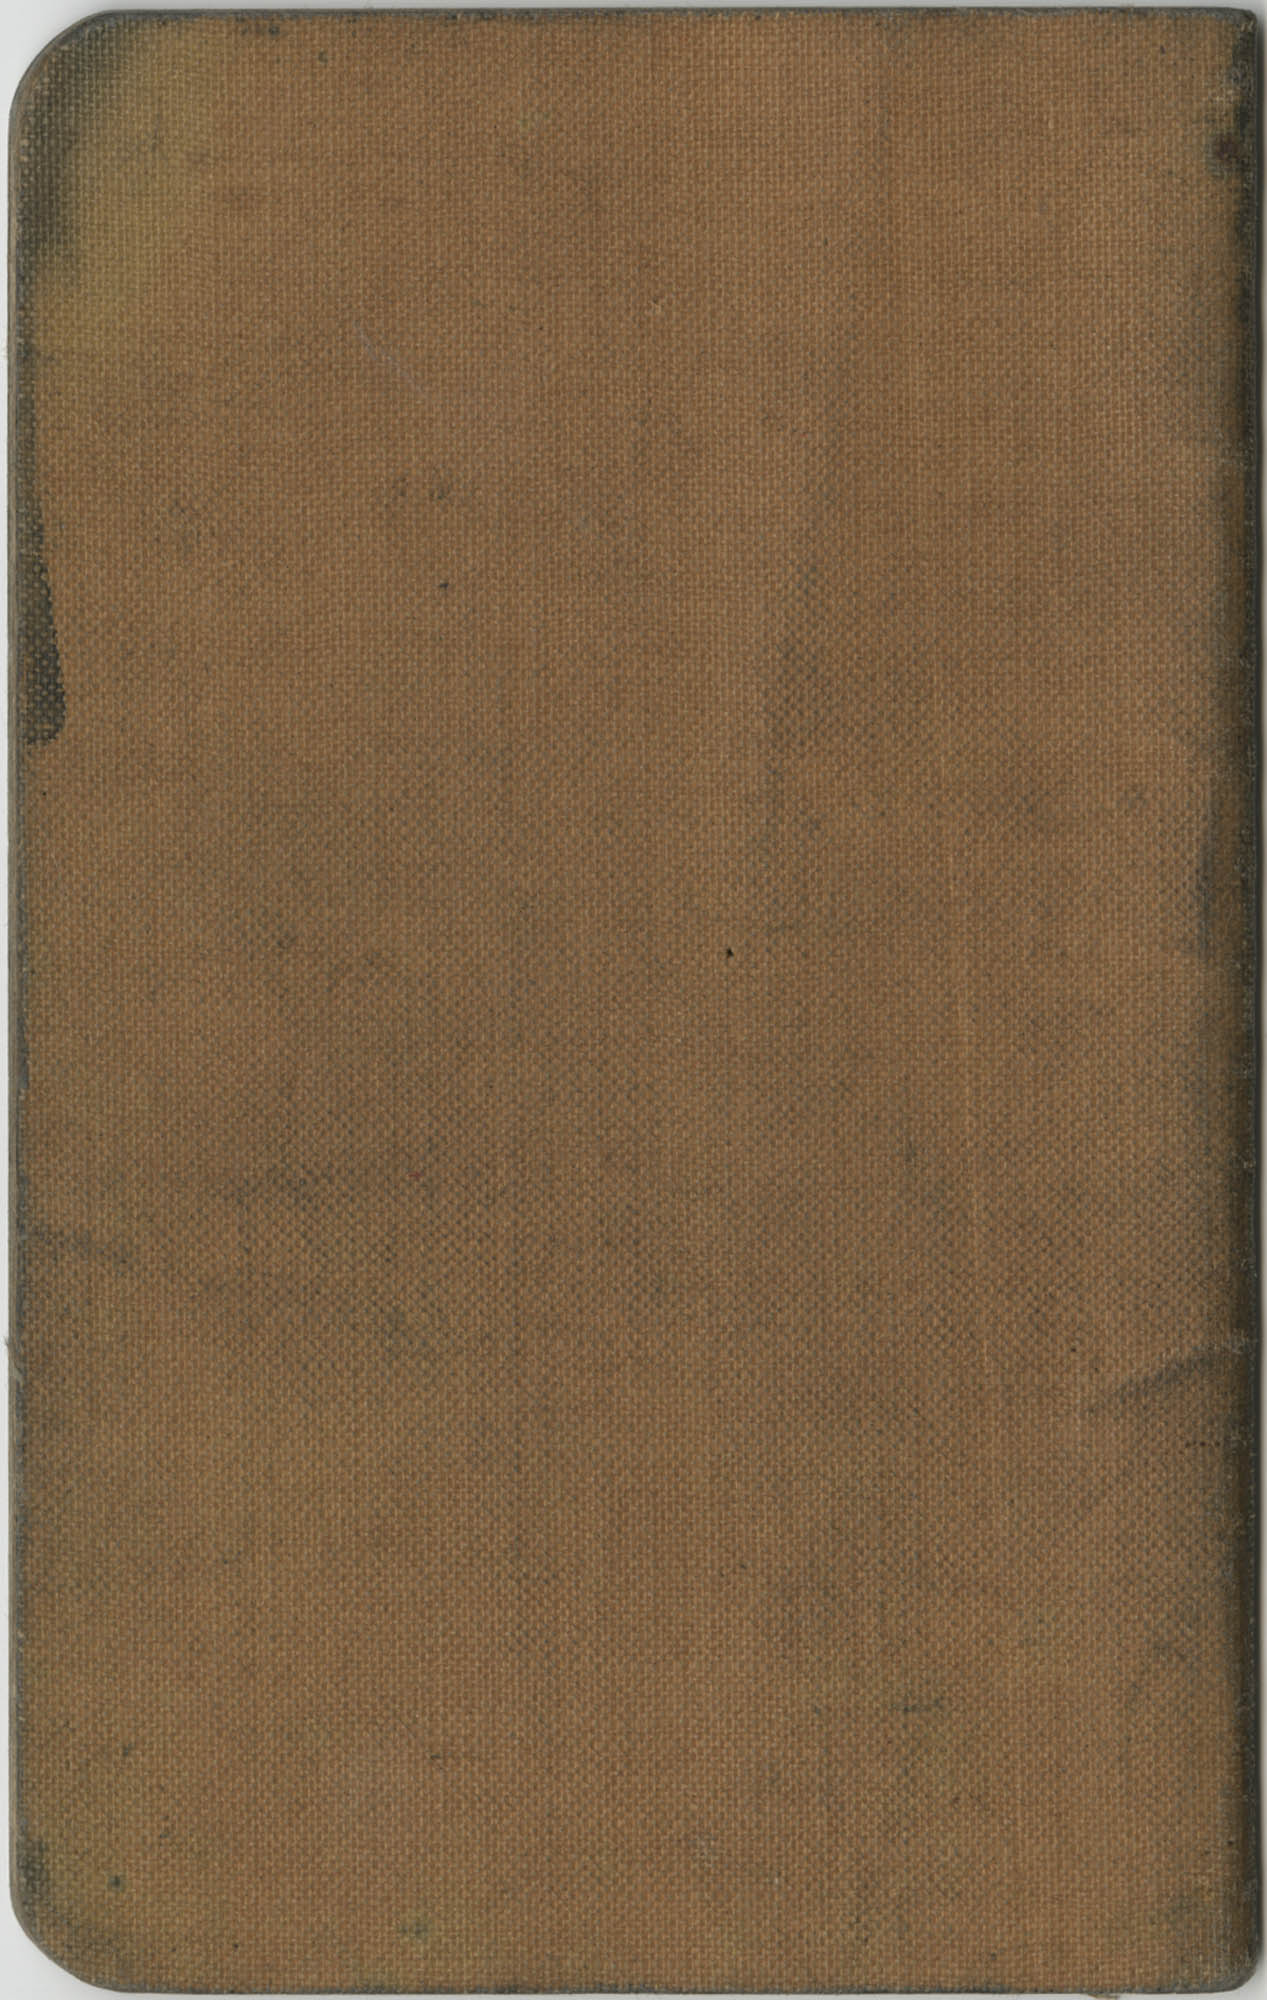 Carolina Savings Bank Account Book for the Y.W.C.A., Coming Street Branch, Back Cover